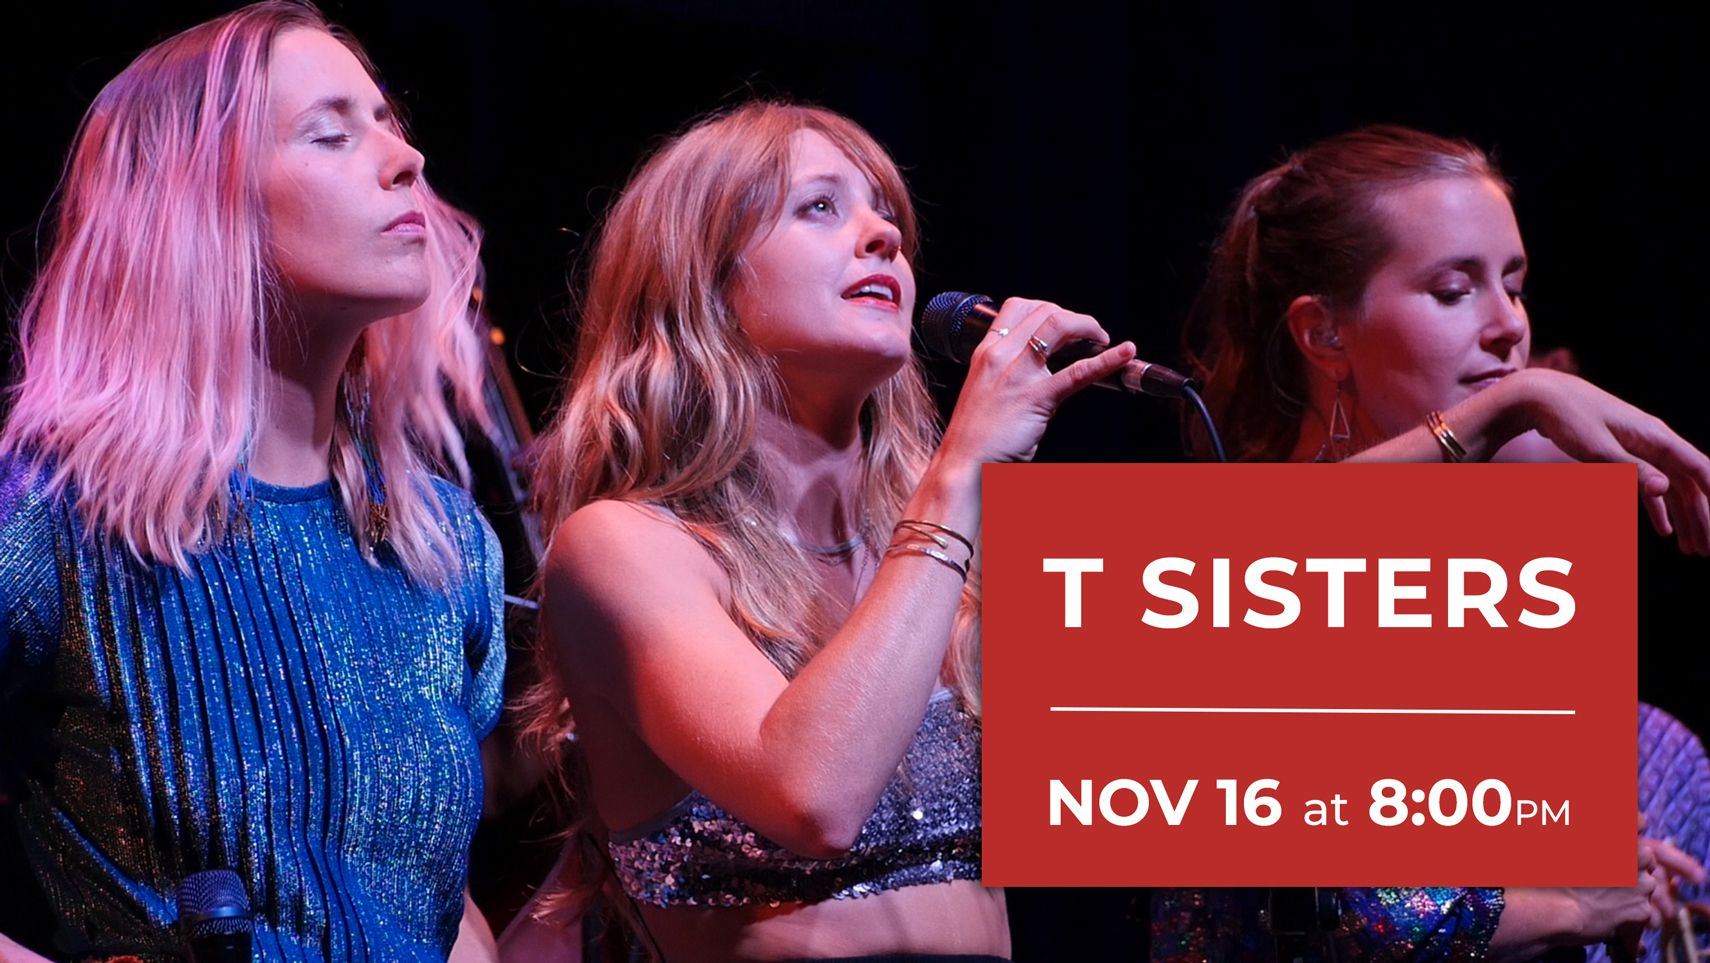 upcoming_shows_tsisters.jpg - 963.82 kB